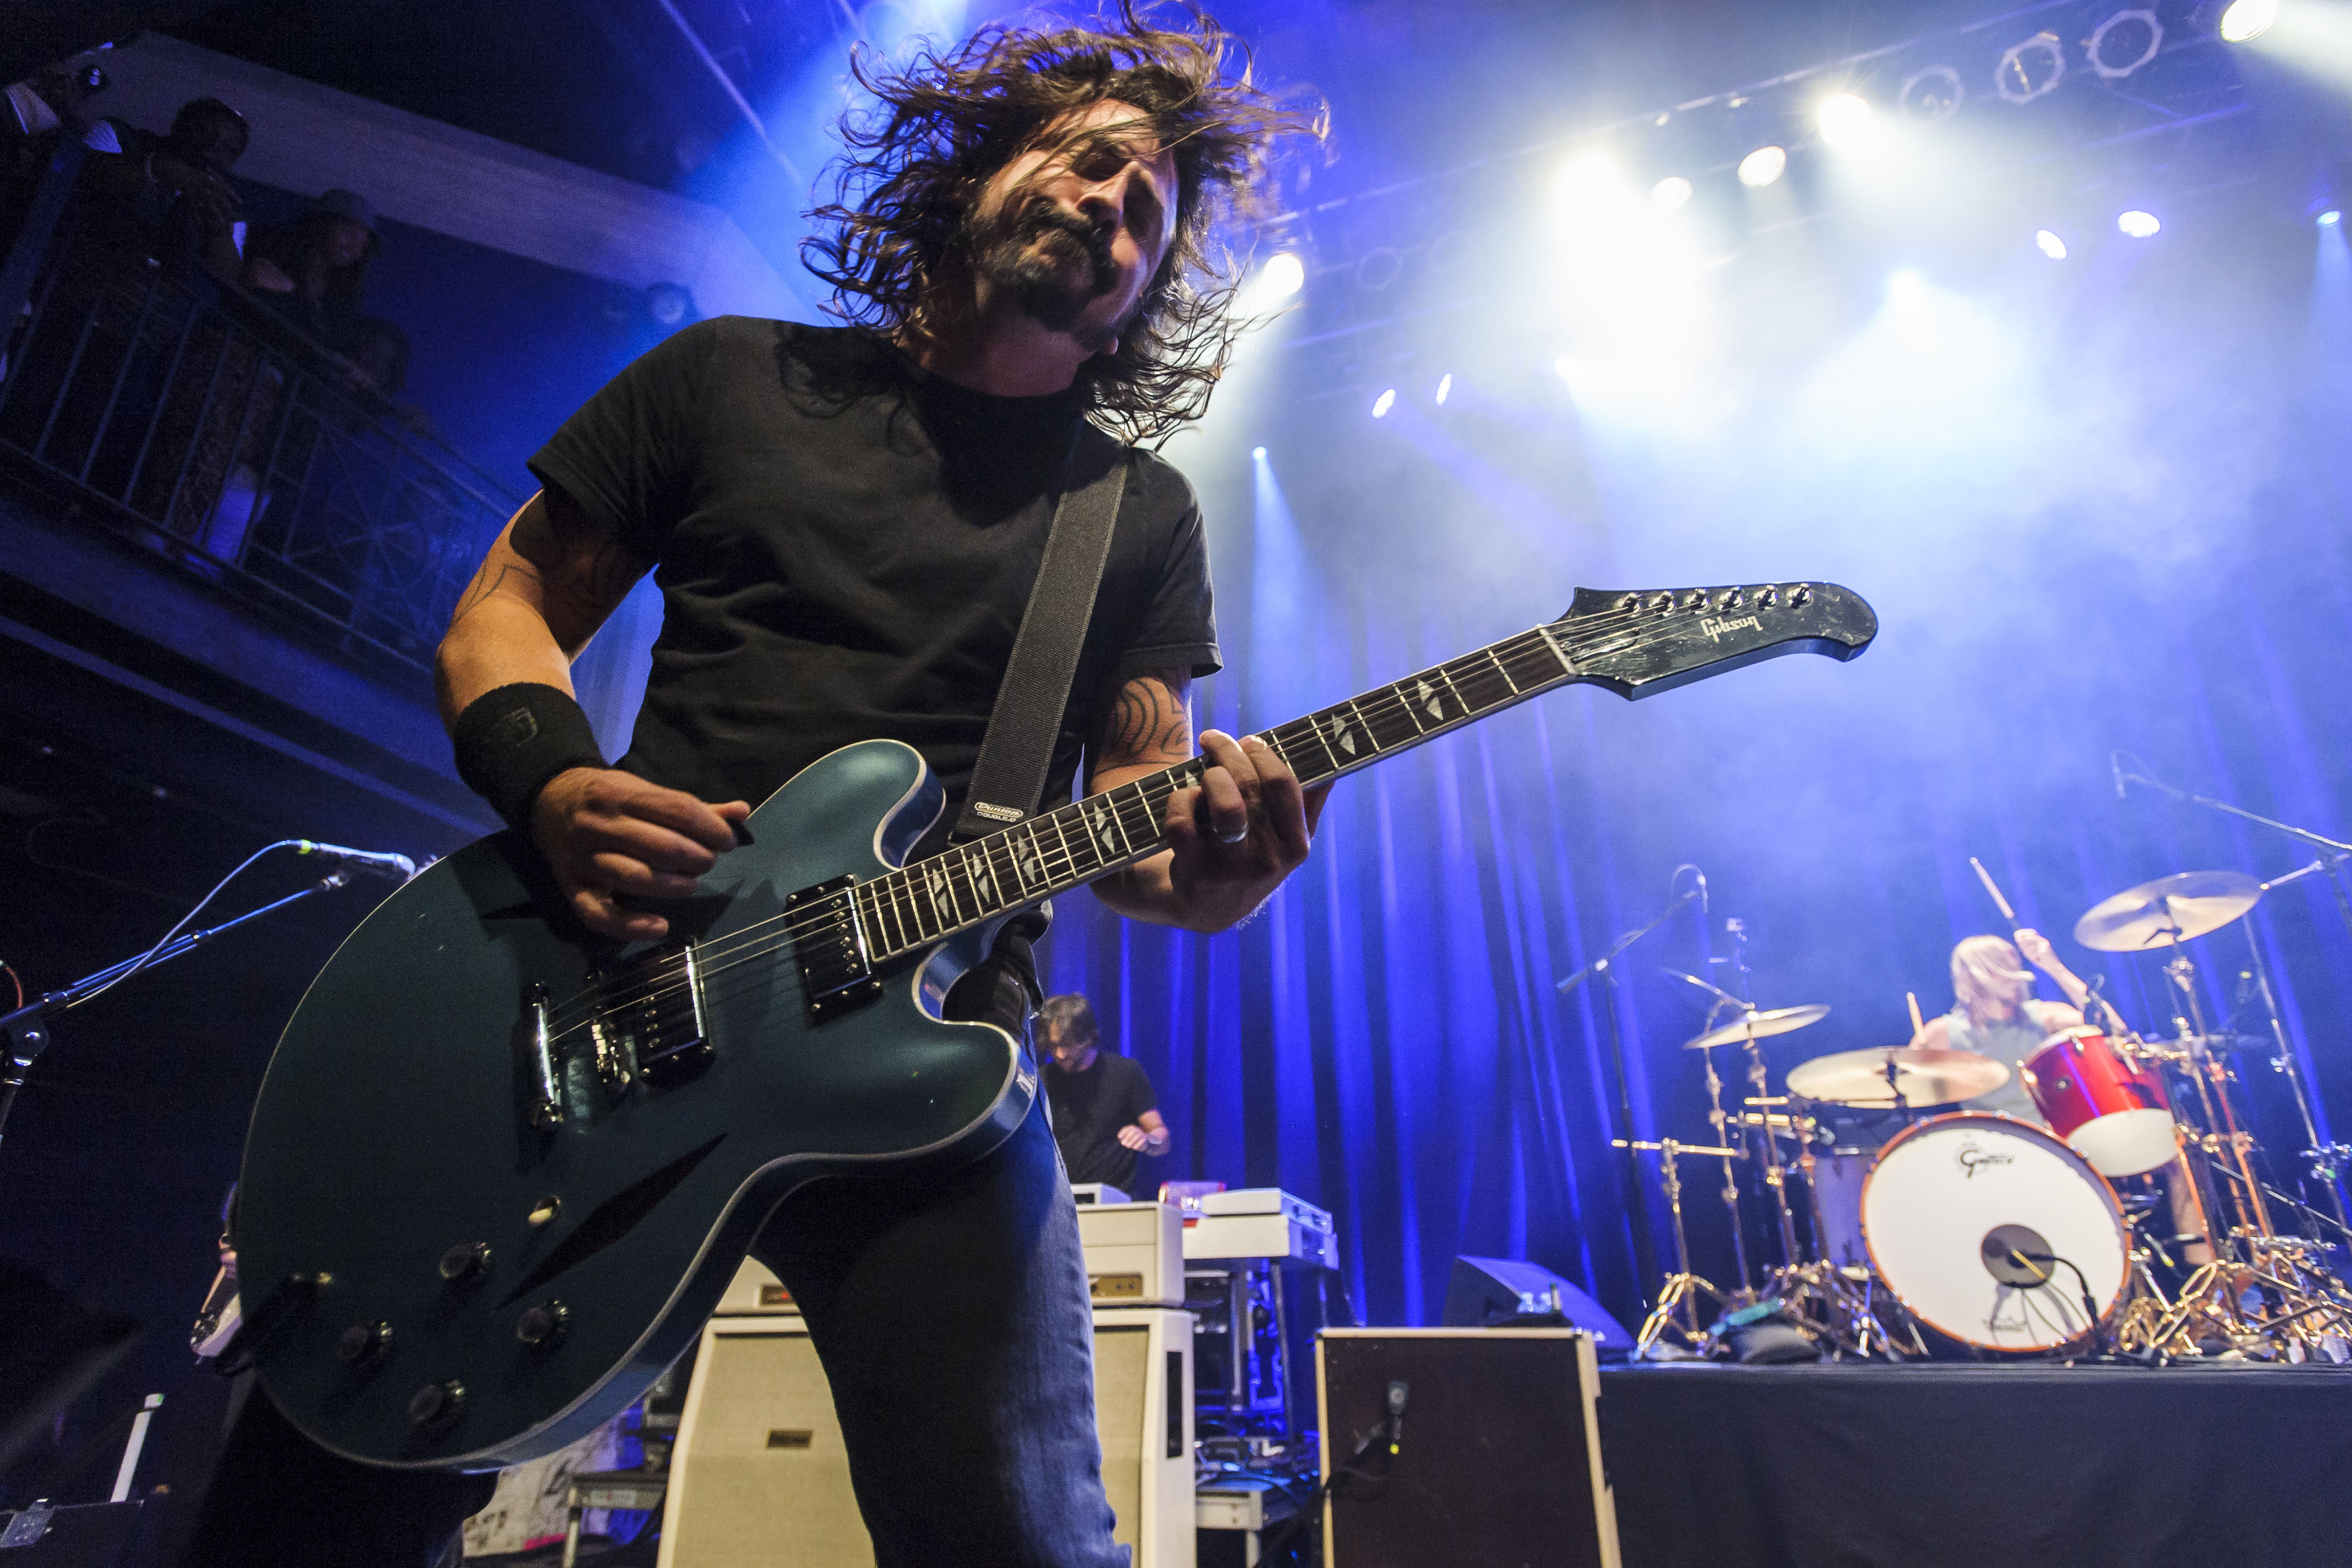 Dave Grohl of the Foo Fighters performs at the 9:30 Club in Washington on May 5, 2014.